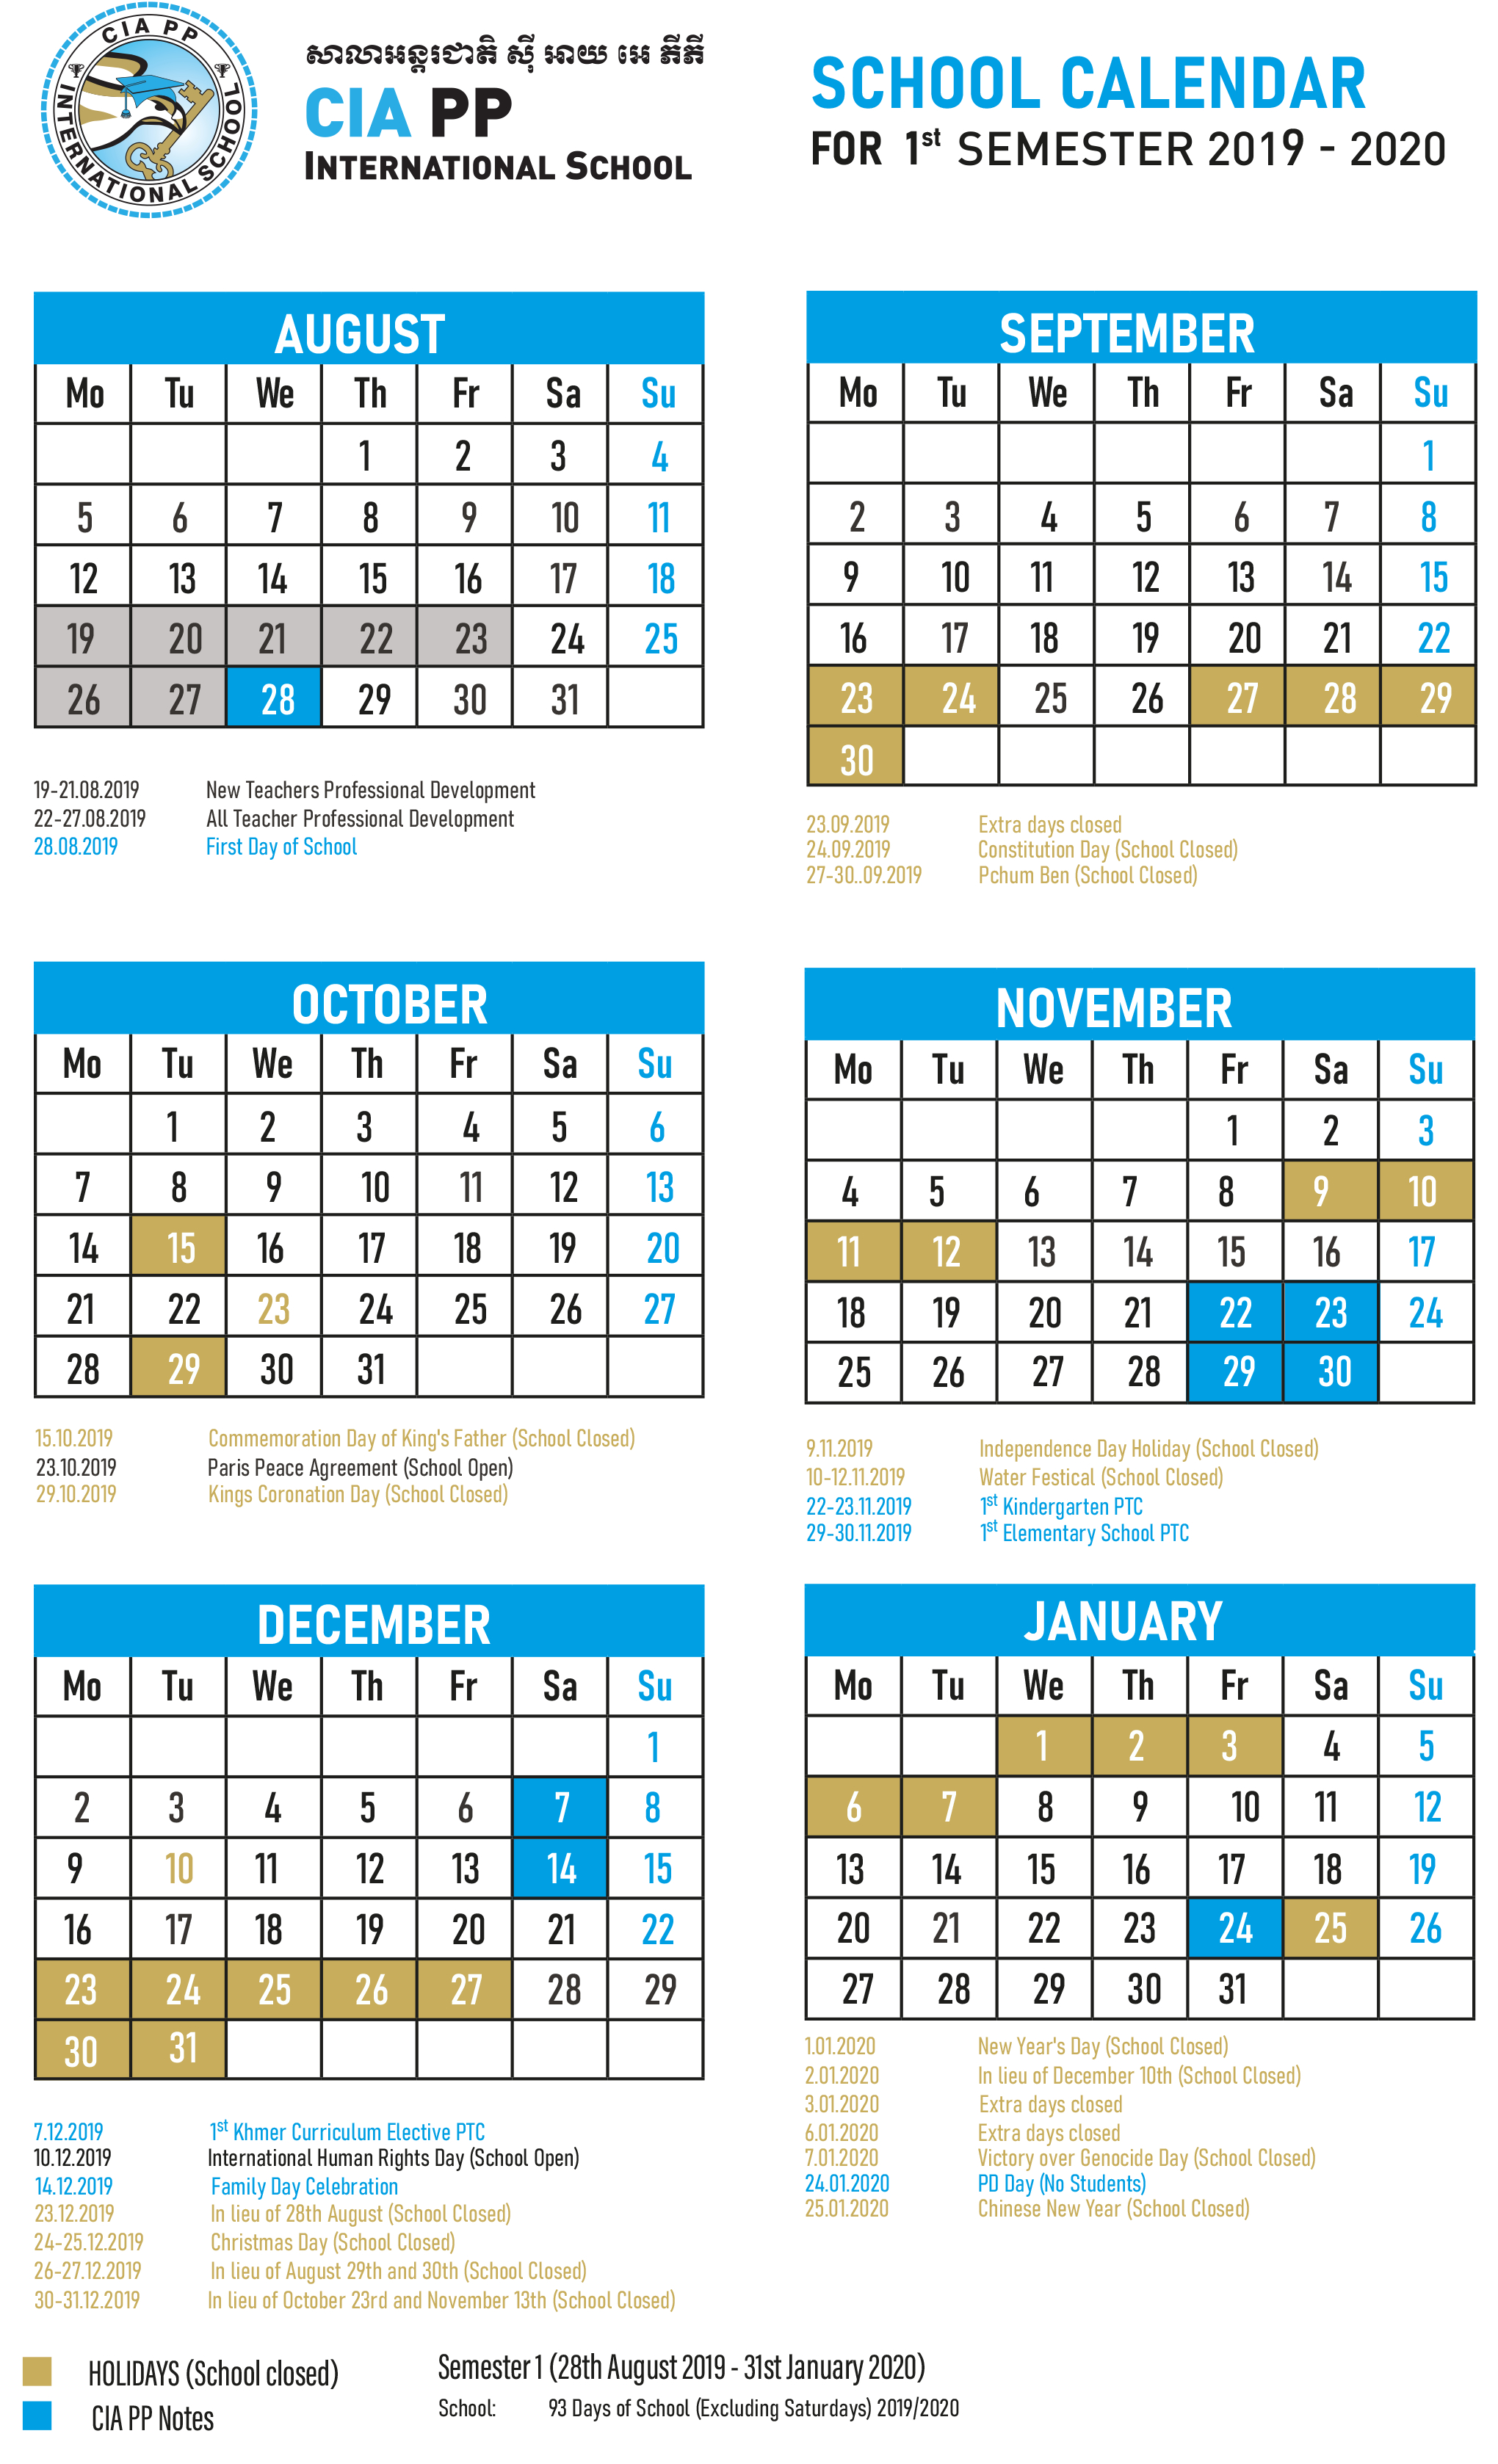 School Calendar - for Six Nations School Caldendar 2019-2020